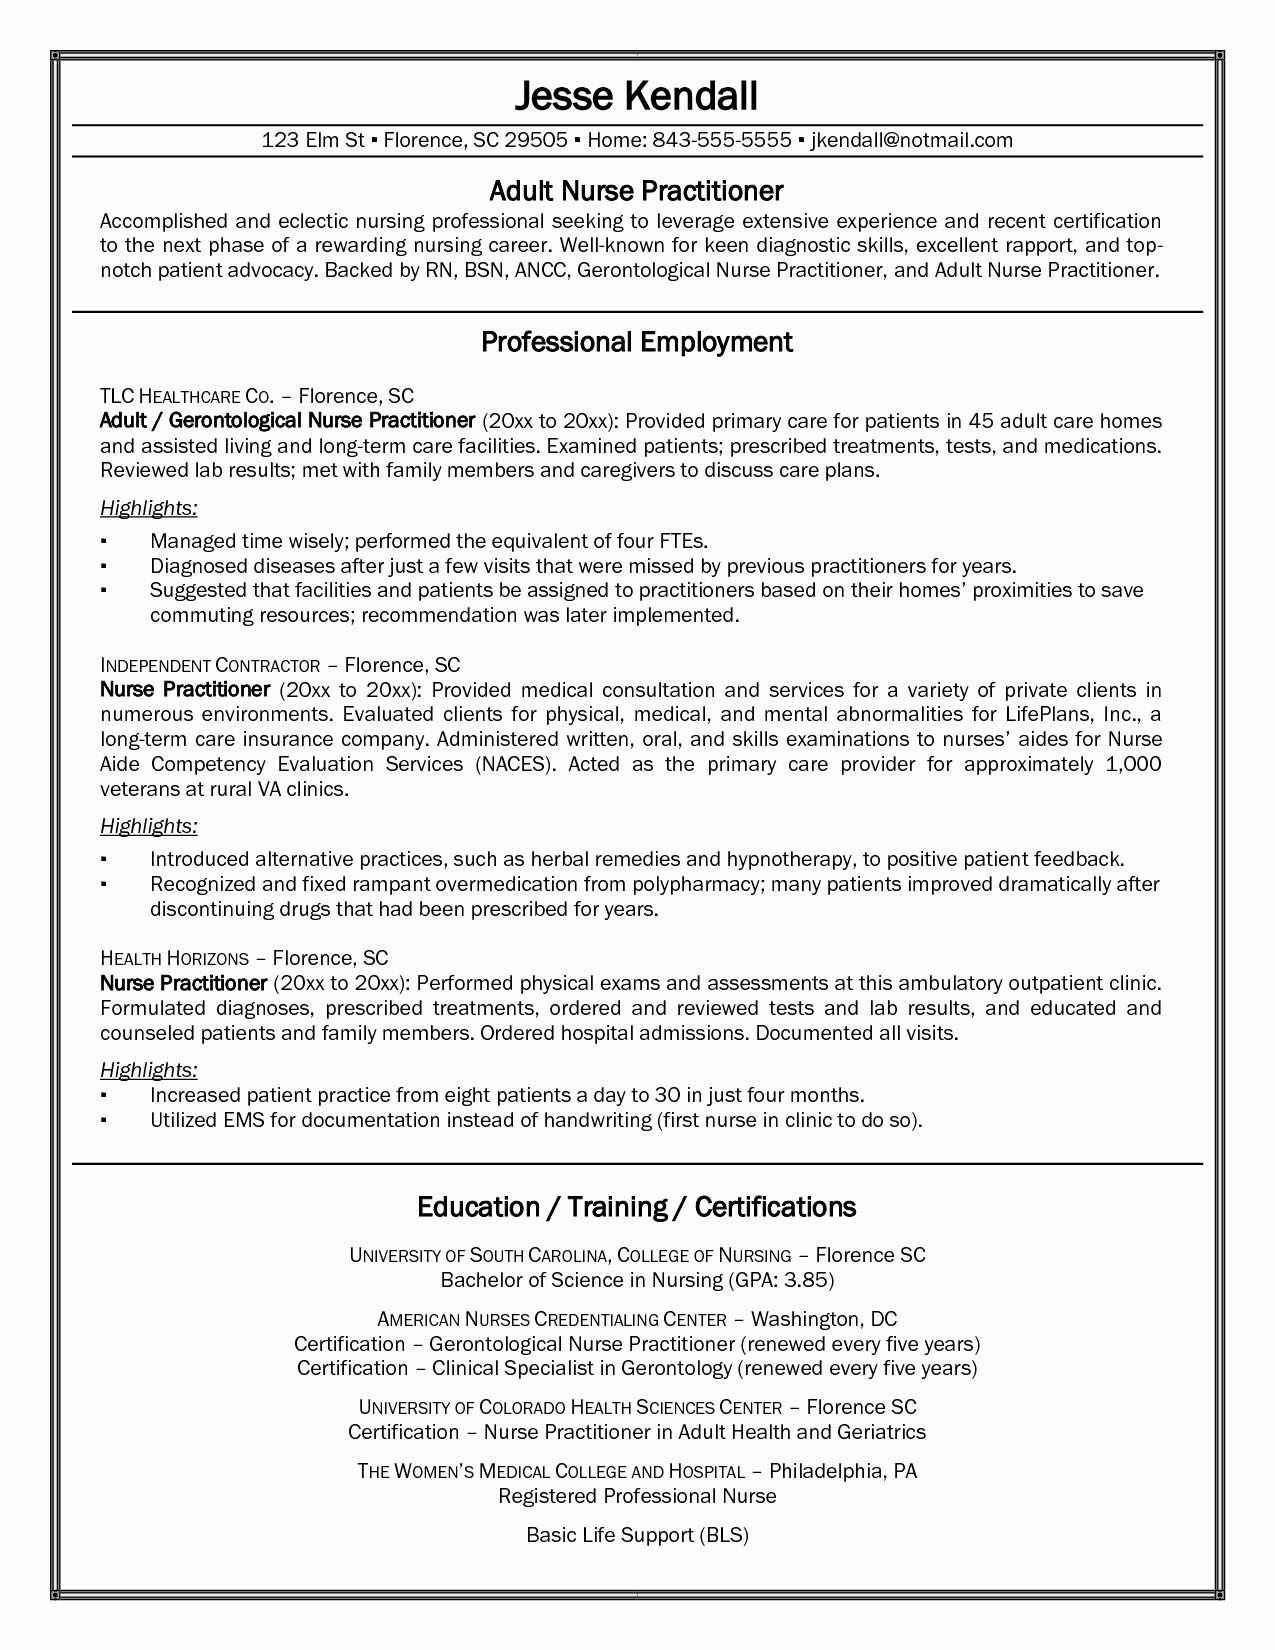 Core Competencies Resume - Professional Nursing Resume Elegant Experienced Rn Resume Fresh